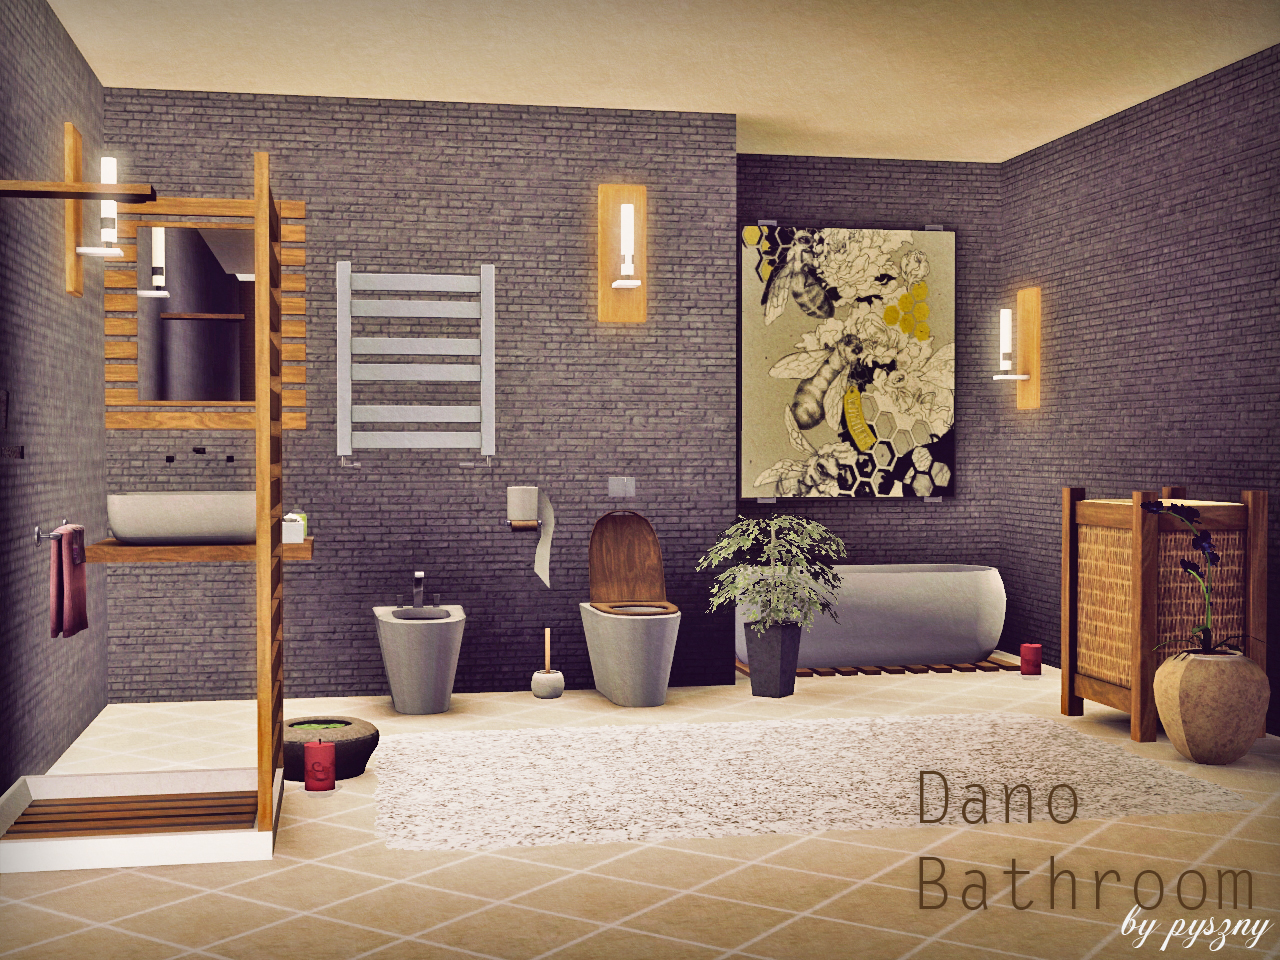 Sims 3 Bathroom Ideas - Dano bathroom